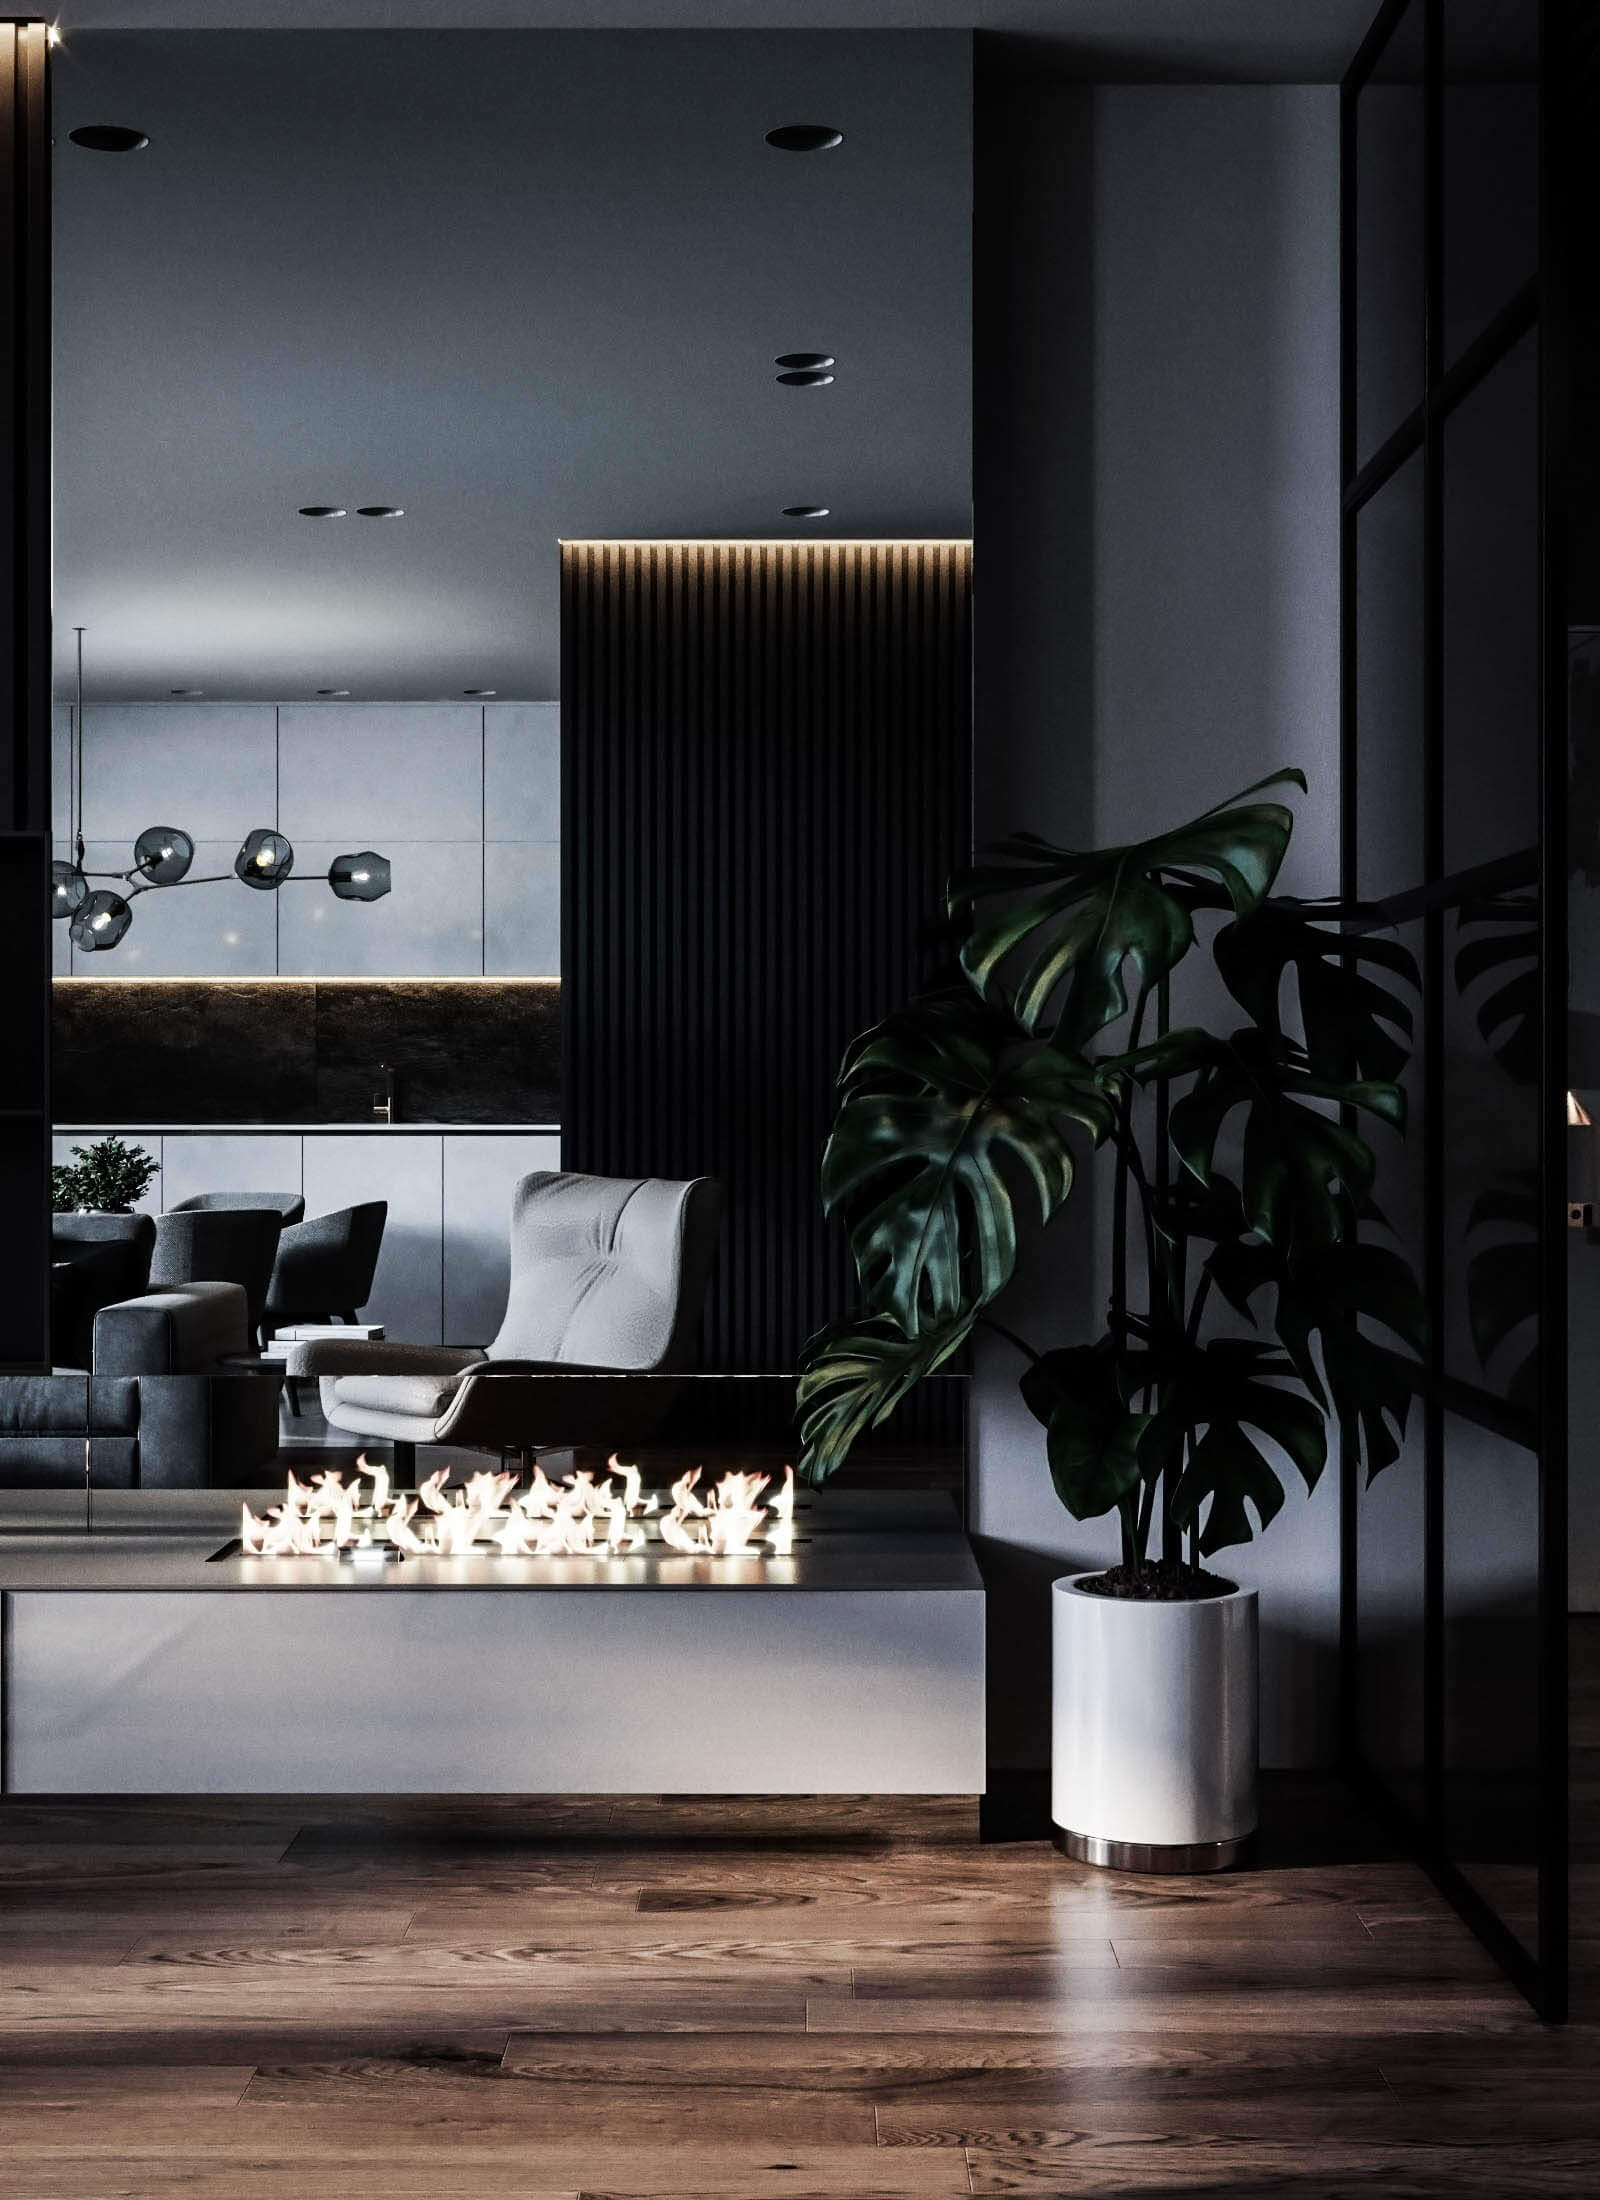 Dubrovka apartment sideboard living room fire place - cgi visualization